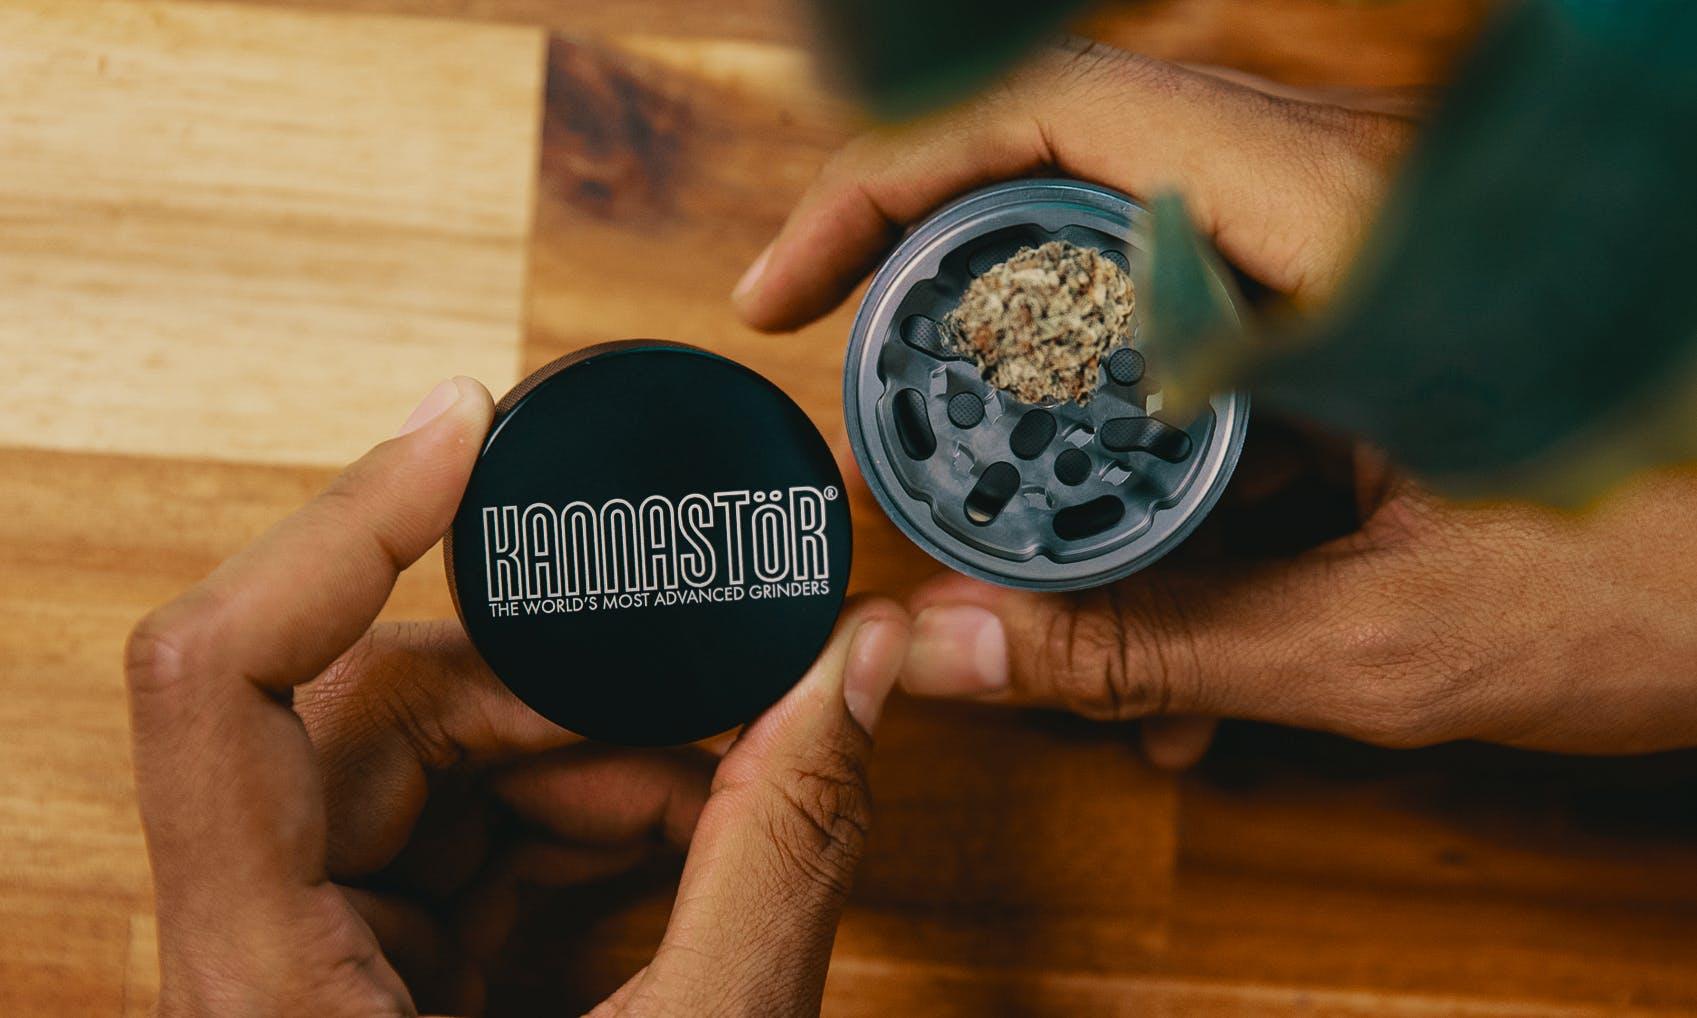 How To Get The Most Out Of Your Stash With The Best Weed Grinders 3 2 How to Get the Most Out Of Your Stash with the Best Weed Grinders